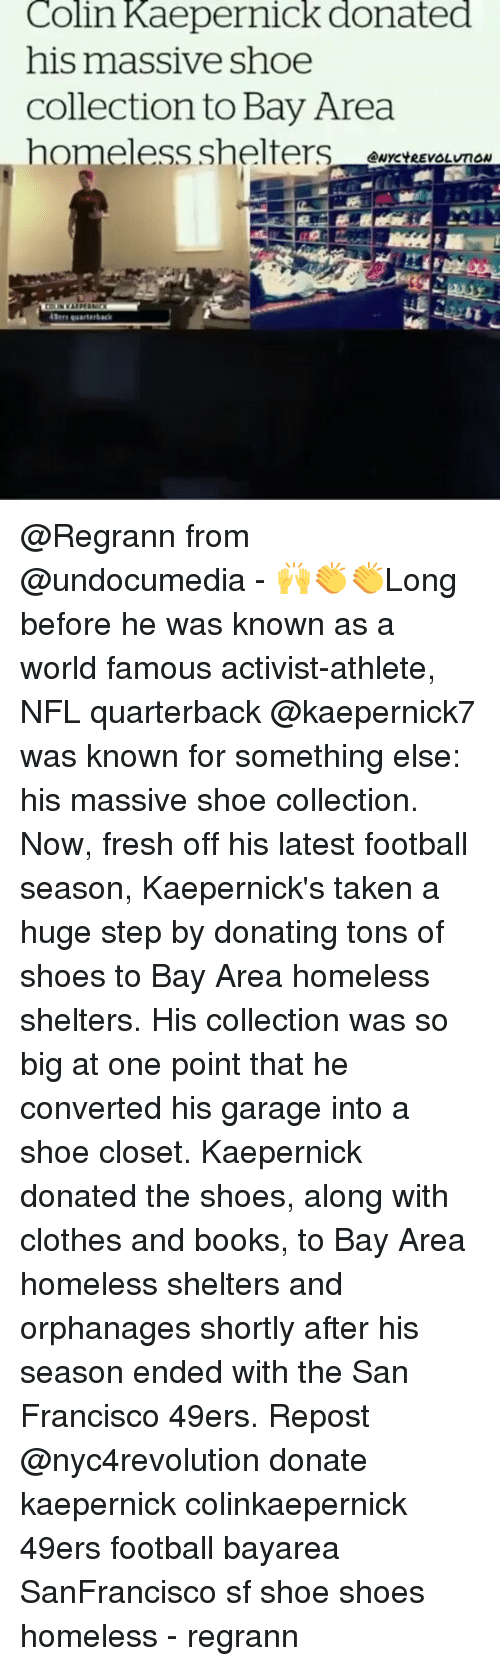 49er: Colin Kaepernick donated  his massive shoe  Collection to Bay Area  homeless shelters  ANYCYREVOLUTON  49ers warterback @Regrann from @undocumedia - 🙌👏👏Long before he was known as a world famous activist-athlete, NFL quarterback @kaepernick7 was known for something else: his massive shoe collection. Now, fresh off his latest football season, Kaepernick's taken a huge step by donating tons of shoes to Bay Area homeless shelters. His collection was so big at one point that he converted his garage into a shoe closet. Kaepernick donated the shoes, along with clothes and books, to Bay Area homeless shelters and orphanages shortly after his season ended with the San Francisco 49ers. Repost @nyc4revolution donate kaepernick colinkaepernick 49ers football bayarea SanFrancisco sf shoe shoes homeless - regrann